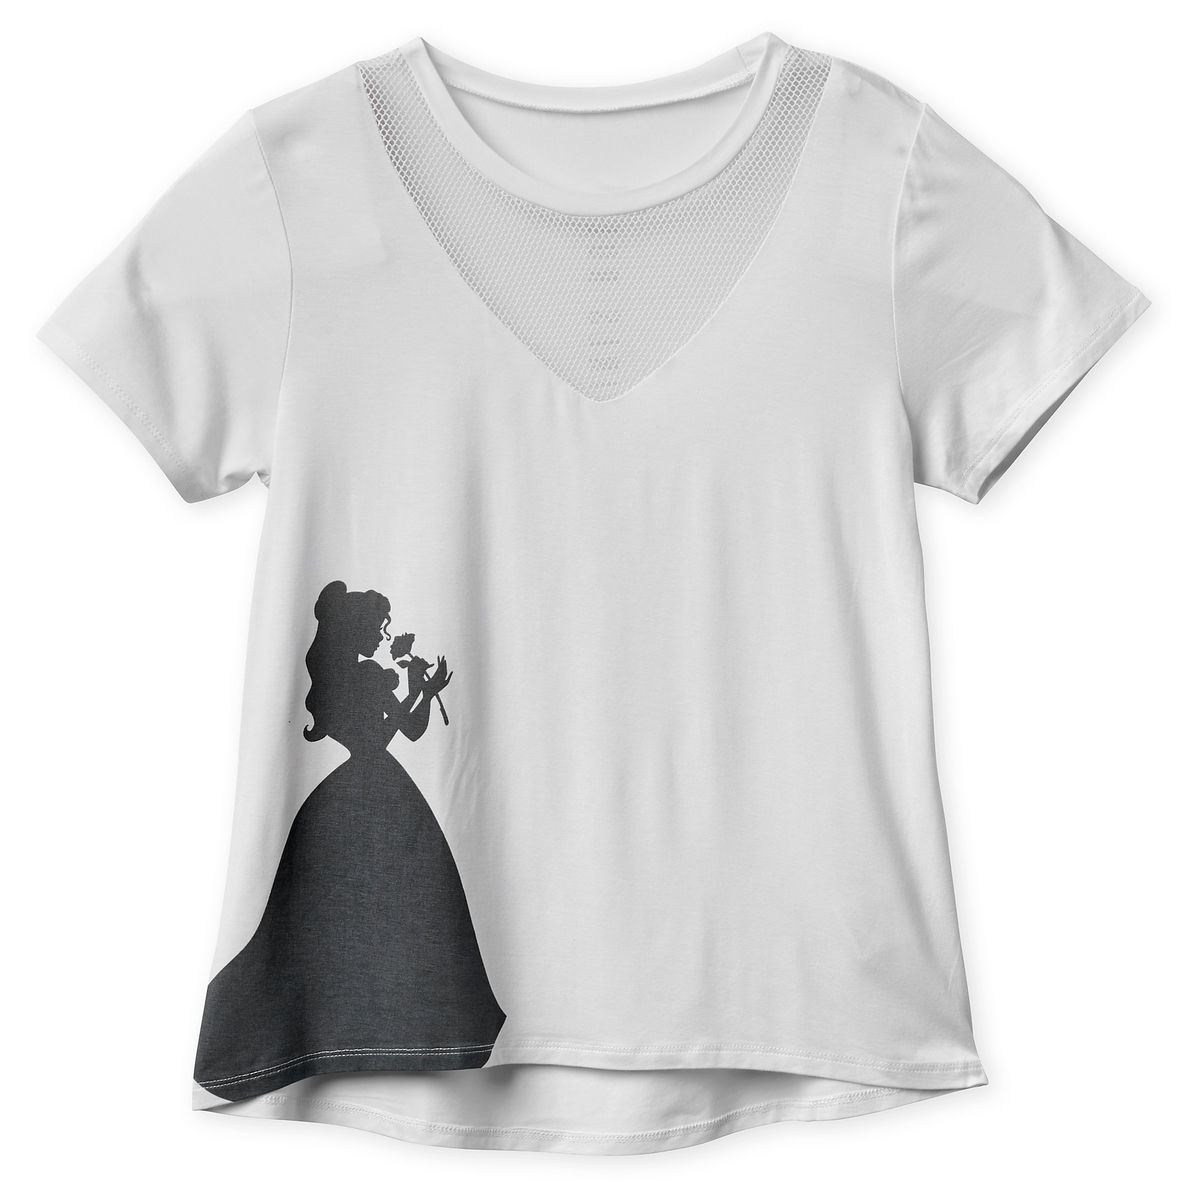 7b032aff3 Add to My Lists. Disney Shirt for Women - Belle Fashion - Beauty and The  Beast